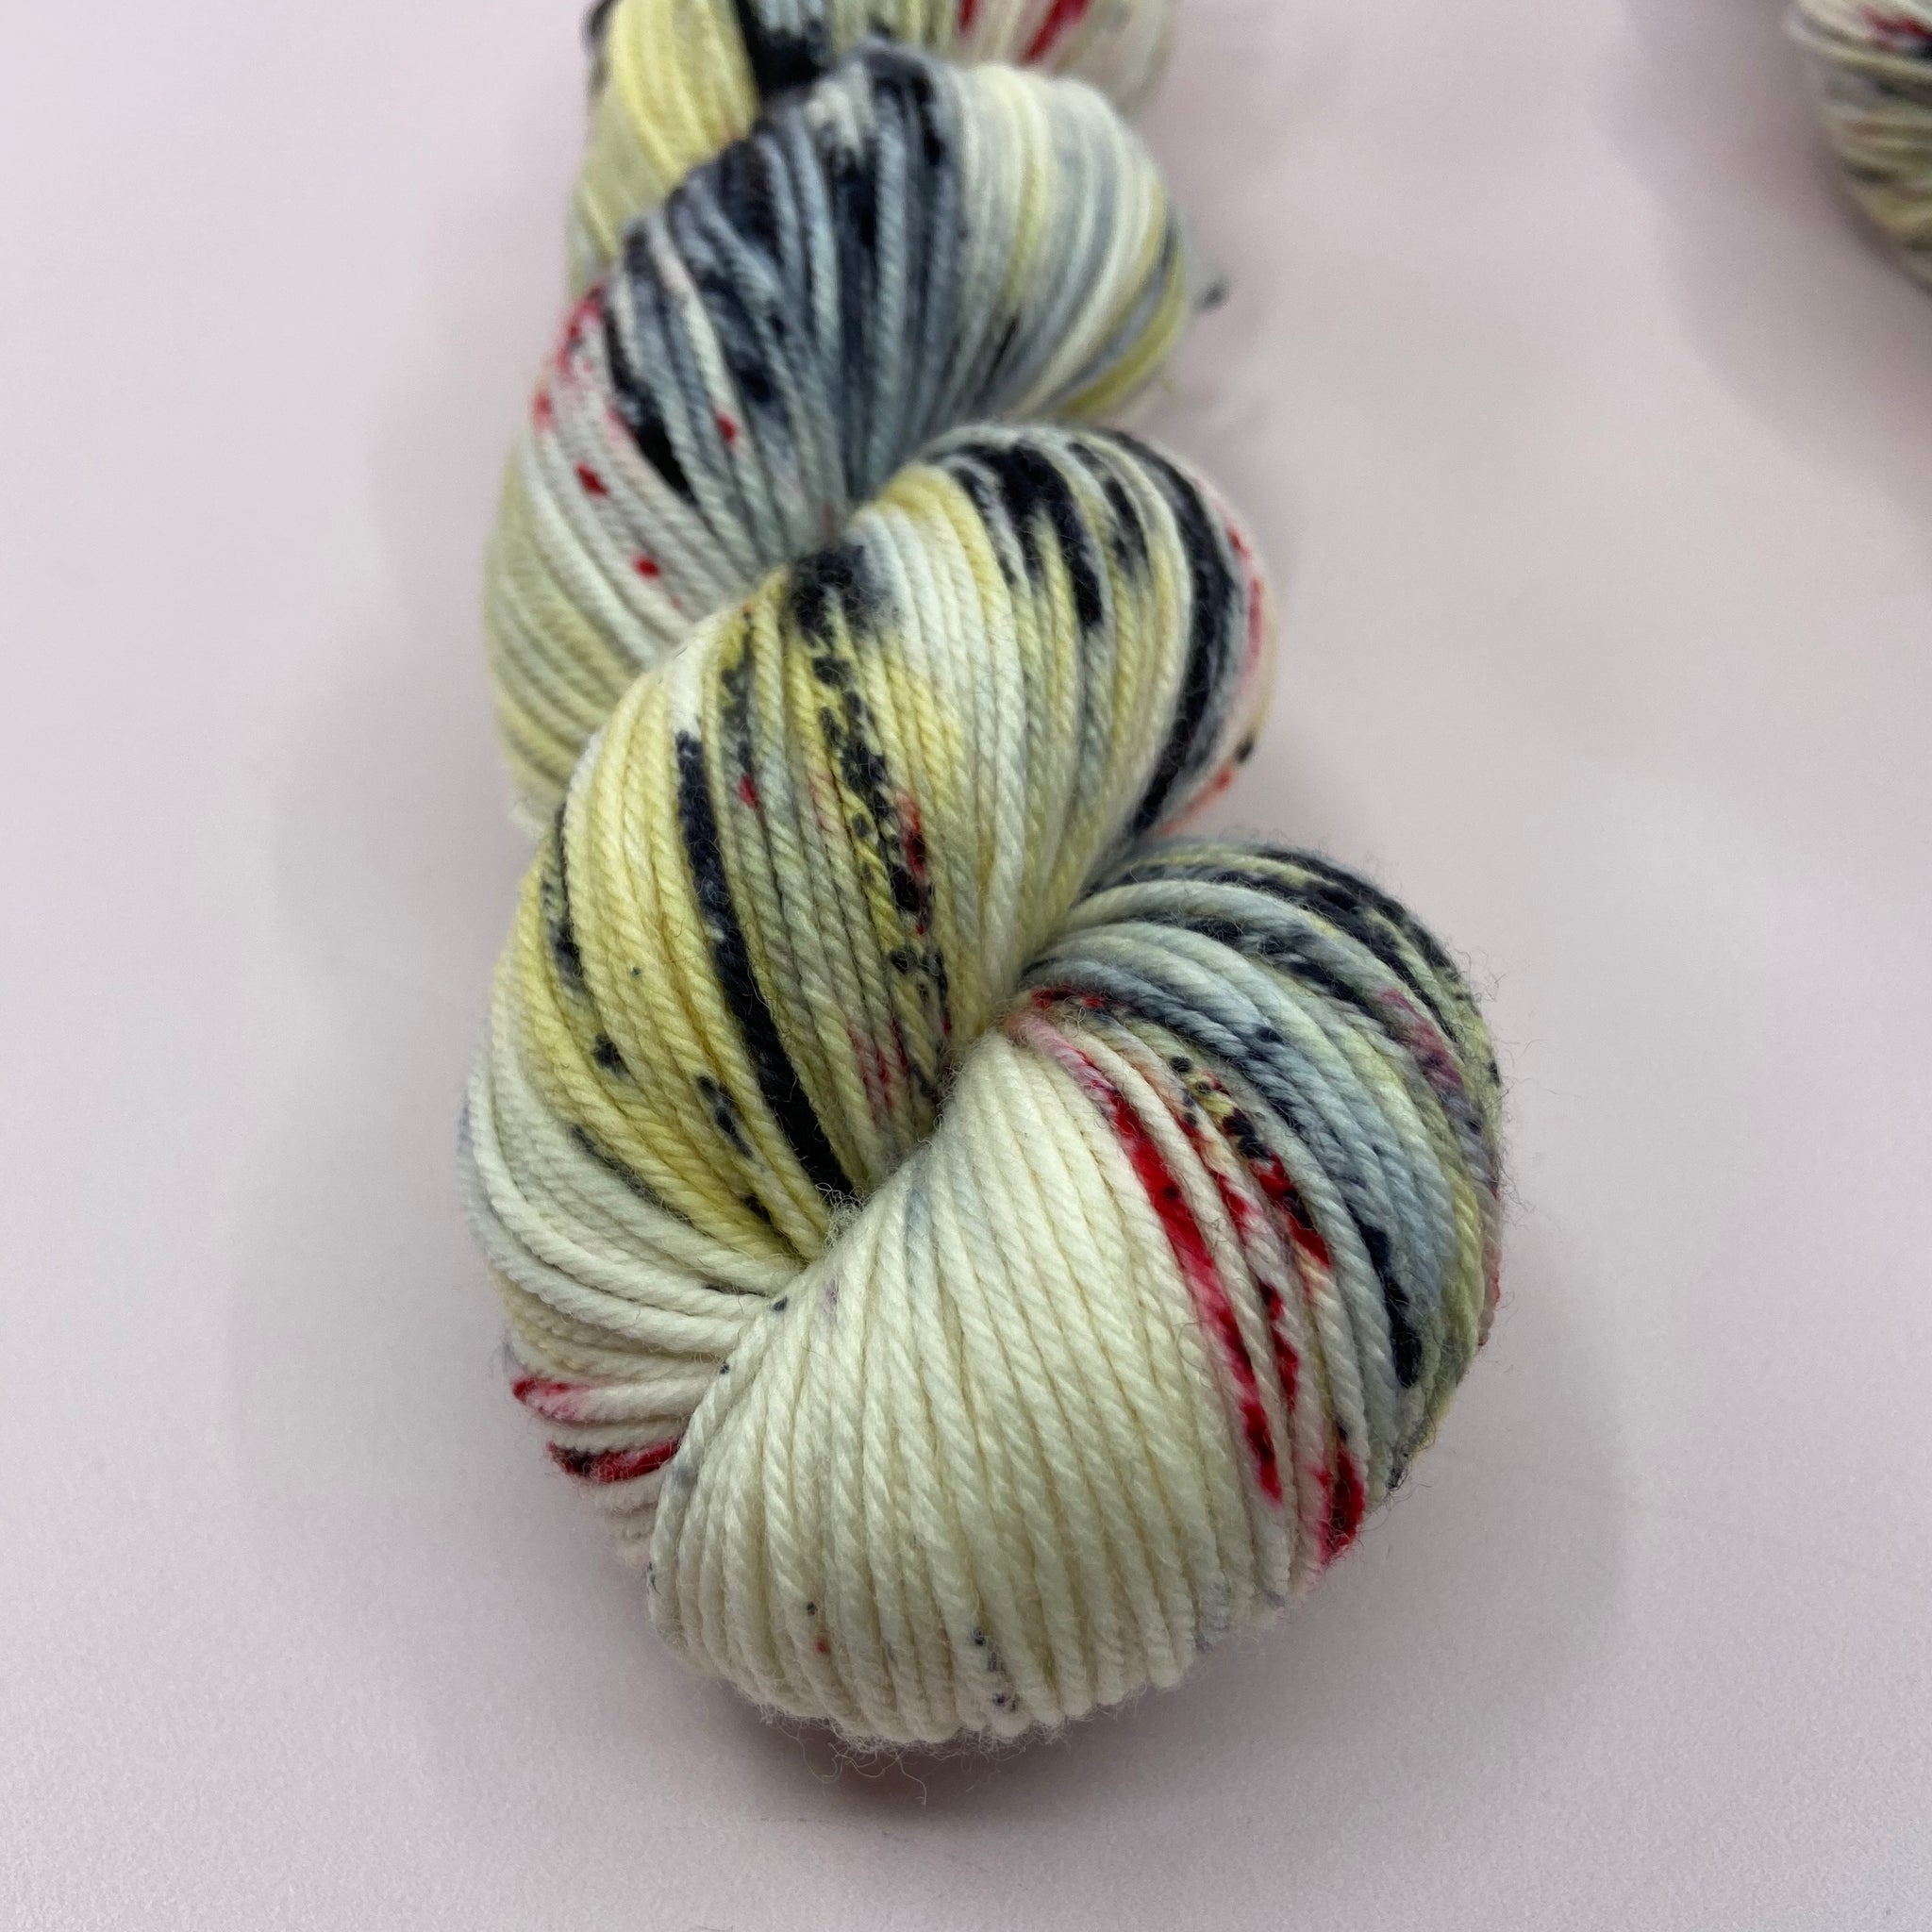 Trevor Morgan DK - Keeping Up With The colorways Kourtney